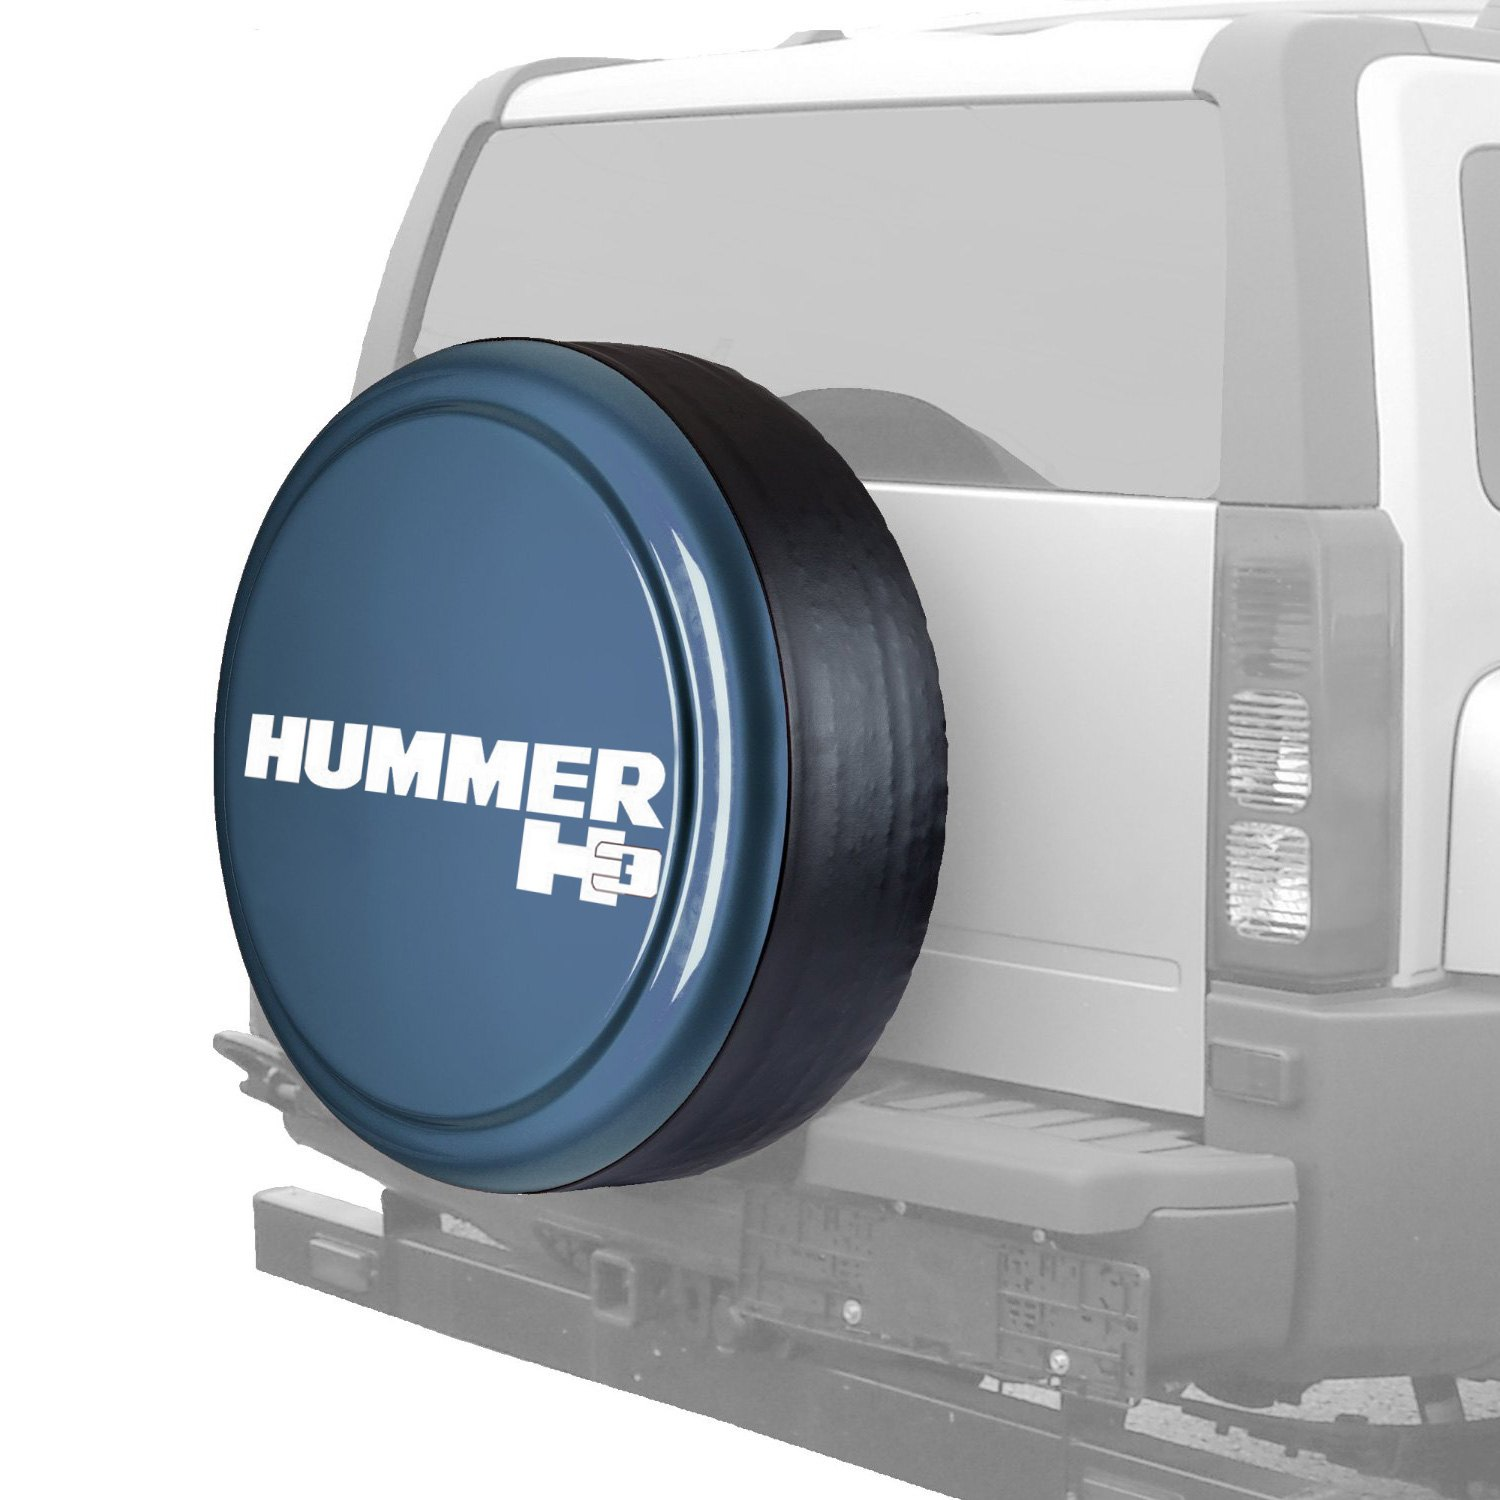 """Details about For Hummer H13 13-13 Tire Cover 1313"""" MasterSeries Slate Blue  Metallic Spare Tire 